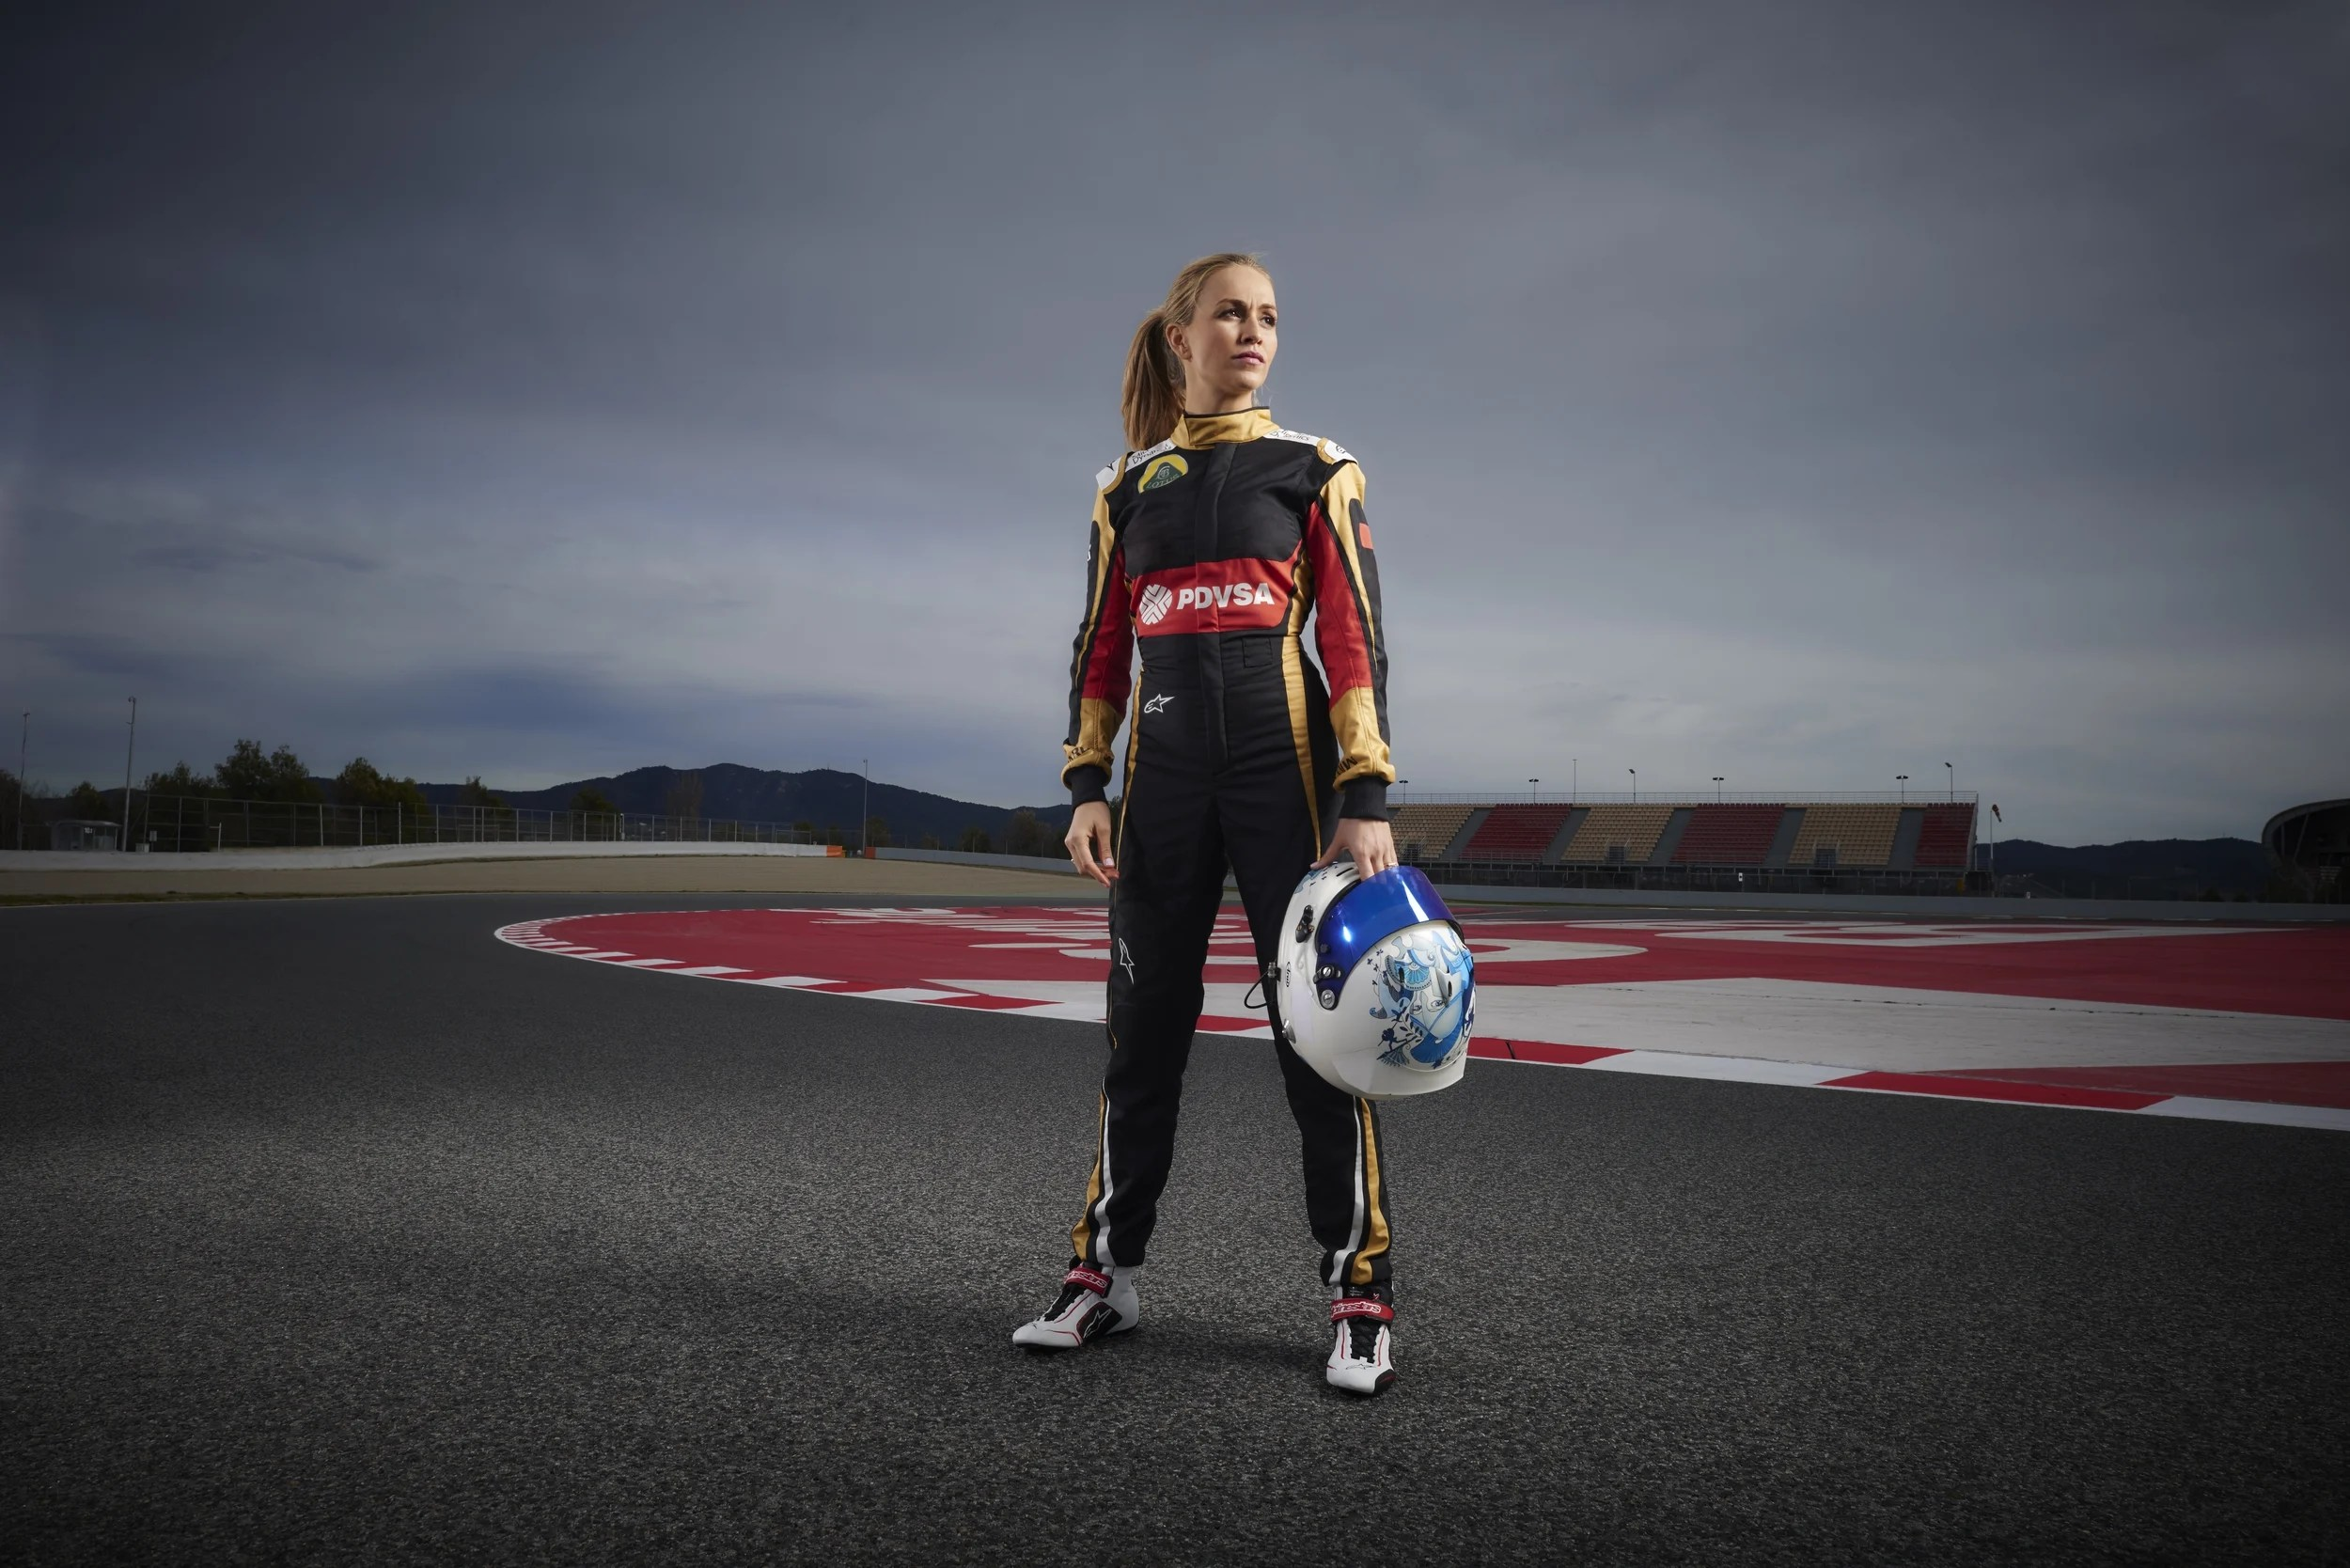 F1 2017 Car Wallpaper Lotus Formula One Team Appoints Female Driver Photos